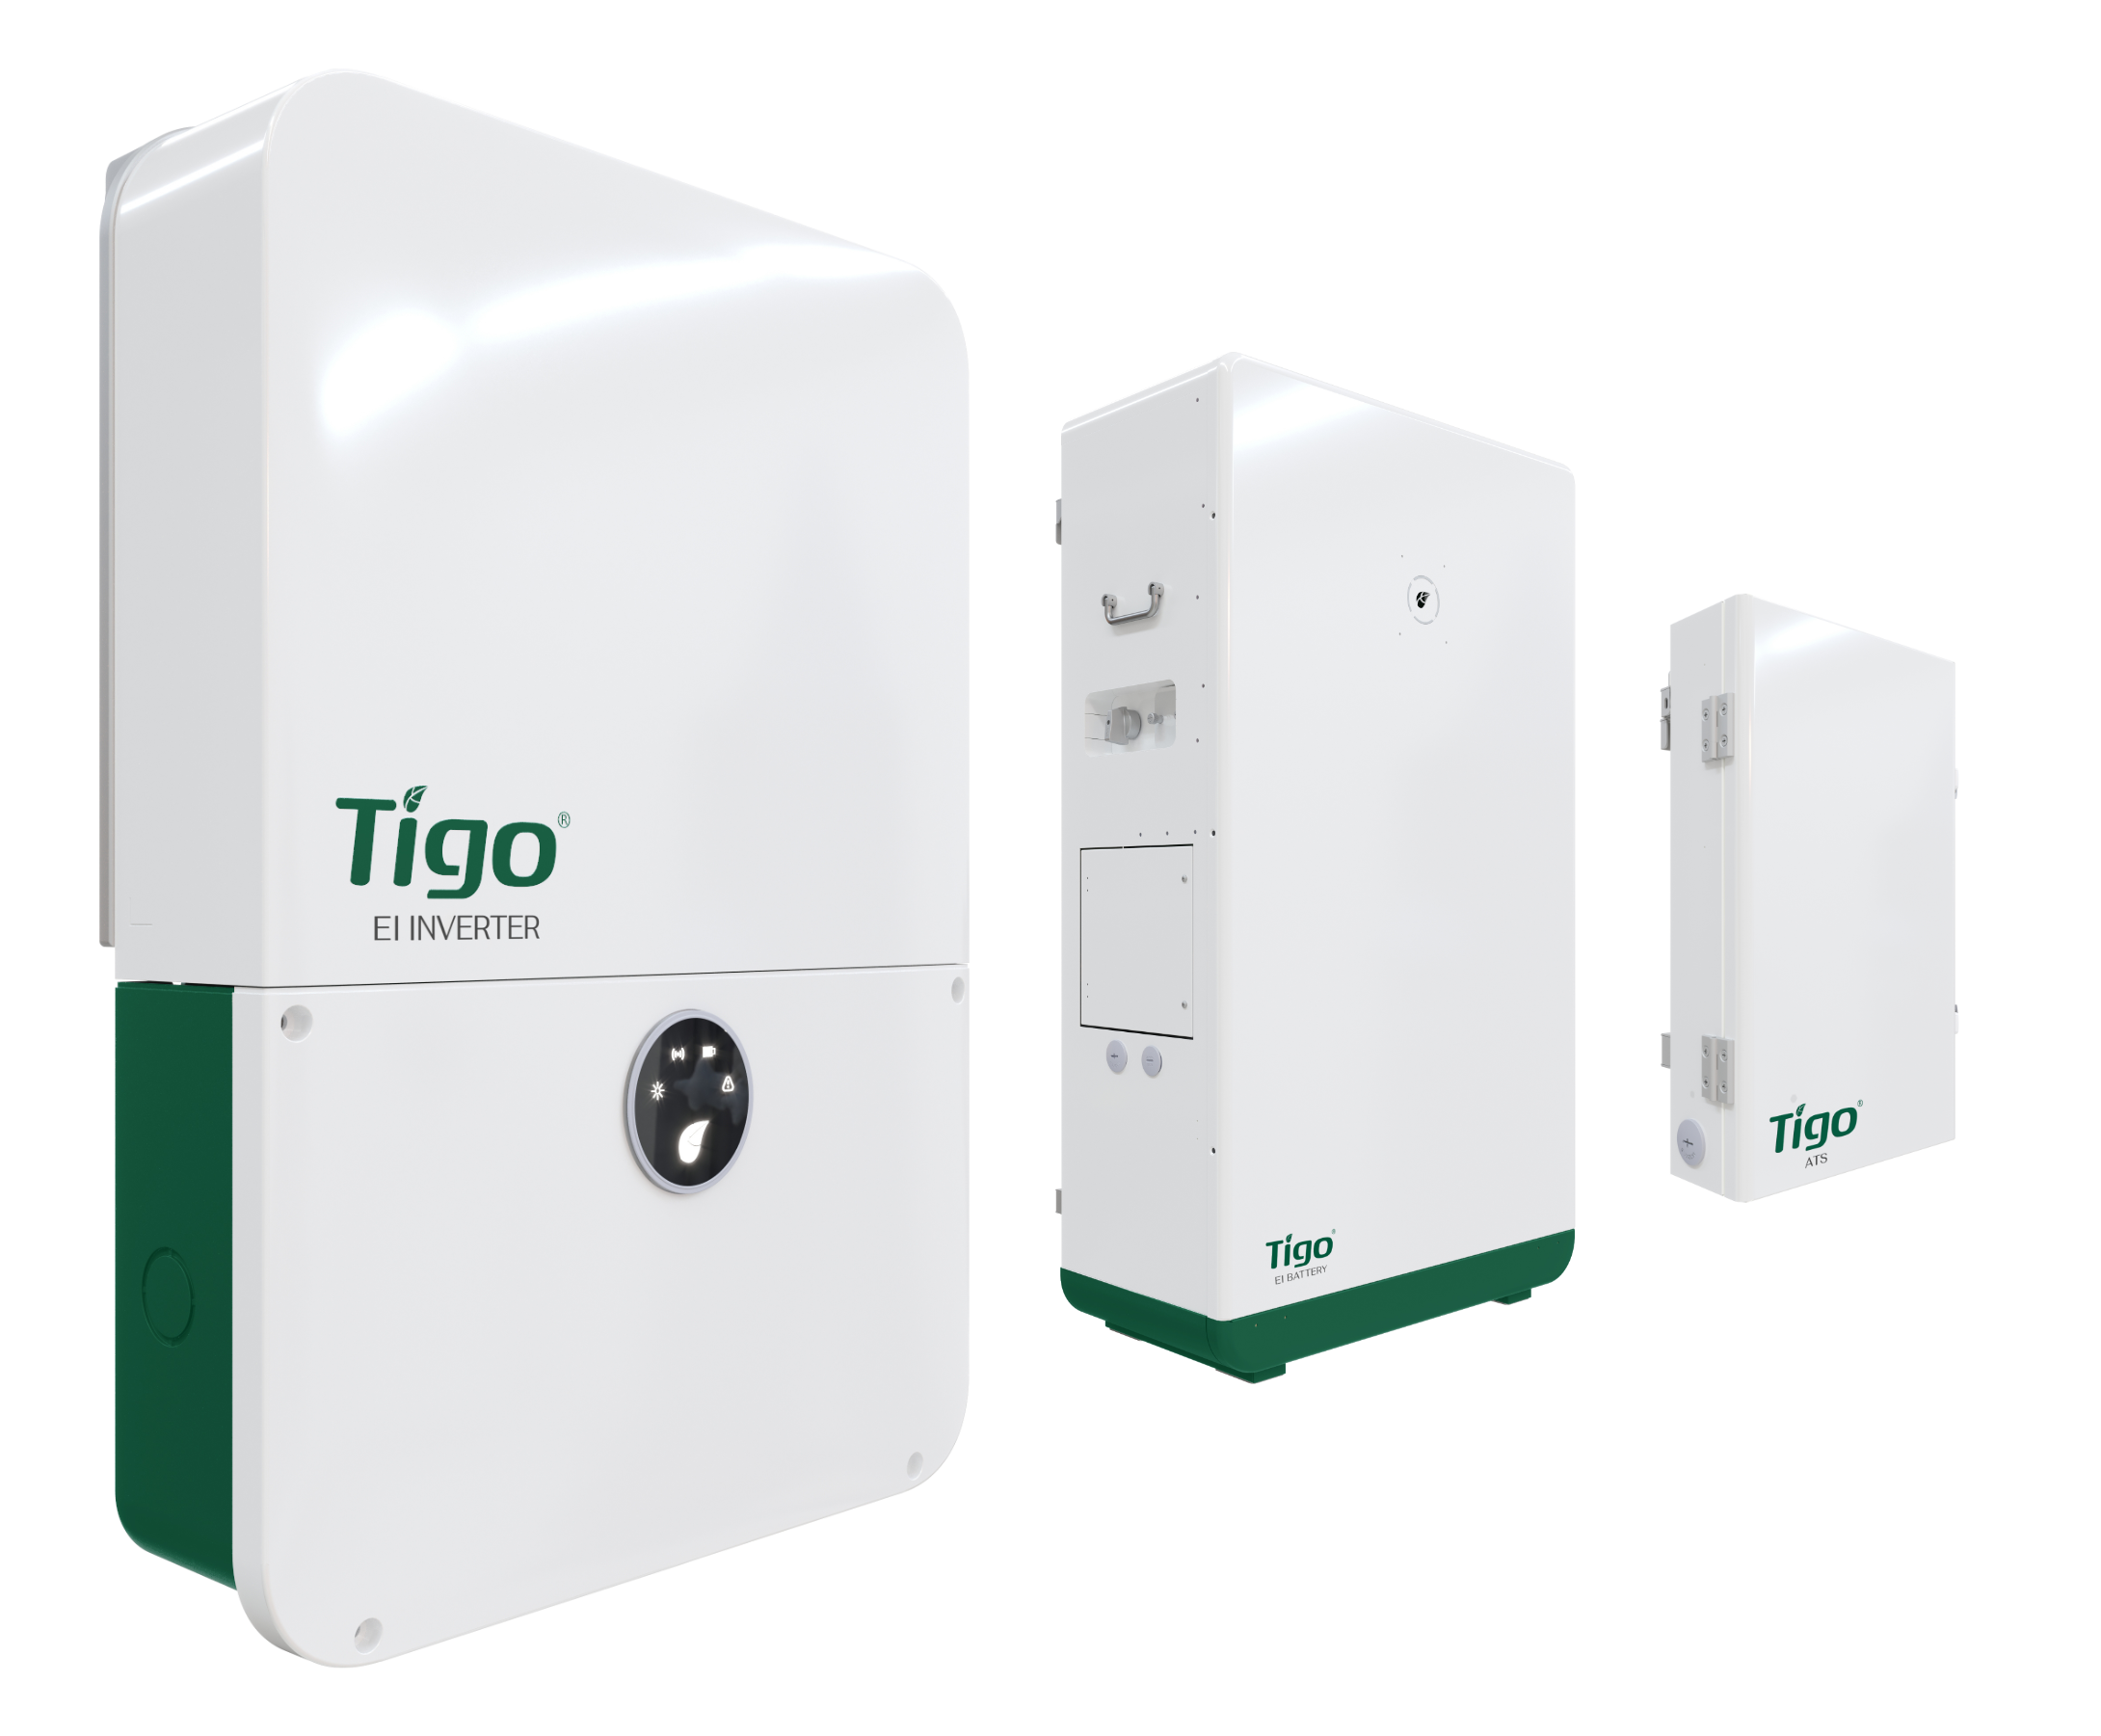 A picture of the Tigo EI Inverter, EI Battery, and ATS (Automatic Transfer Switch), which are all components of the Tigo EI Residential Solution